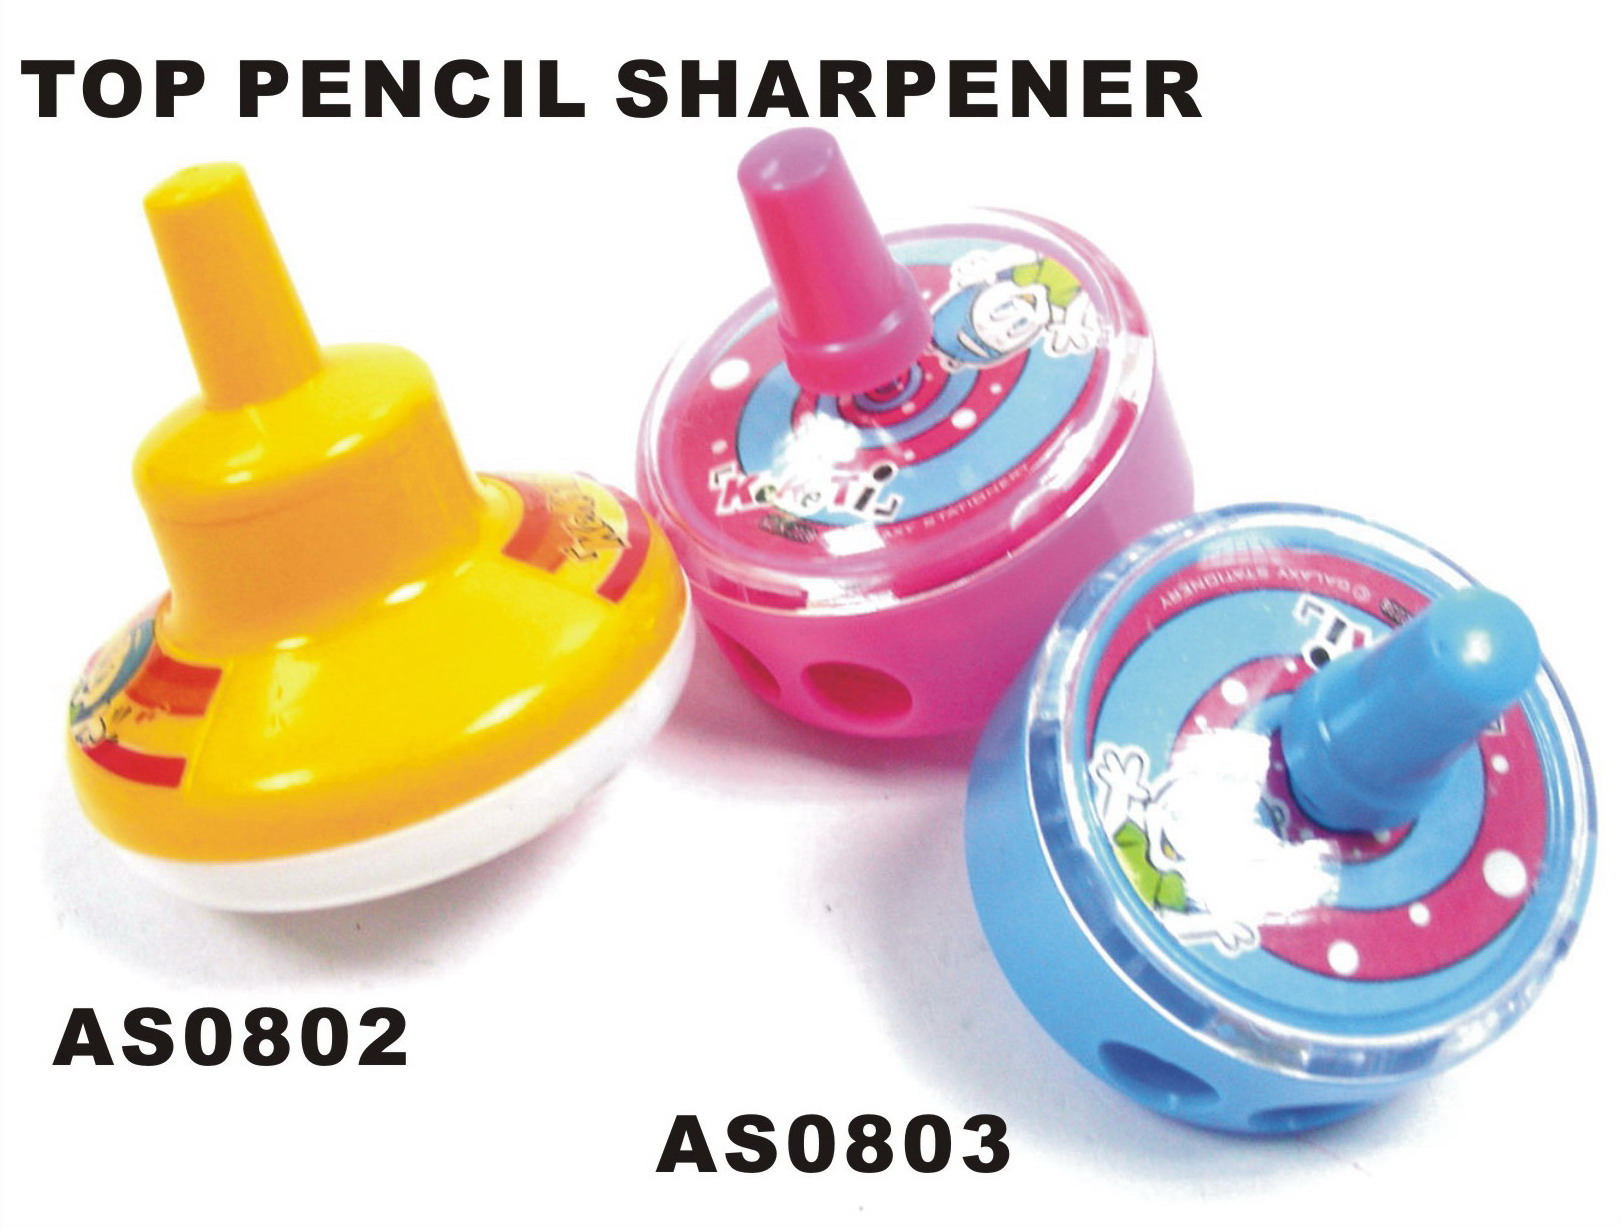 Top Pencil Sharpener